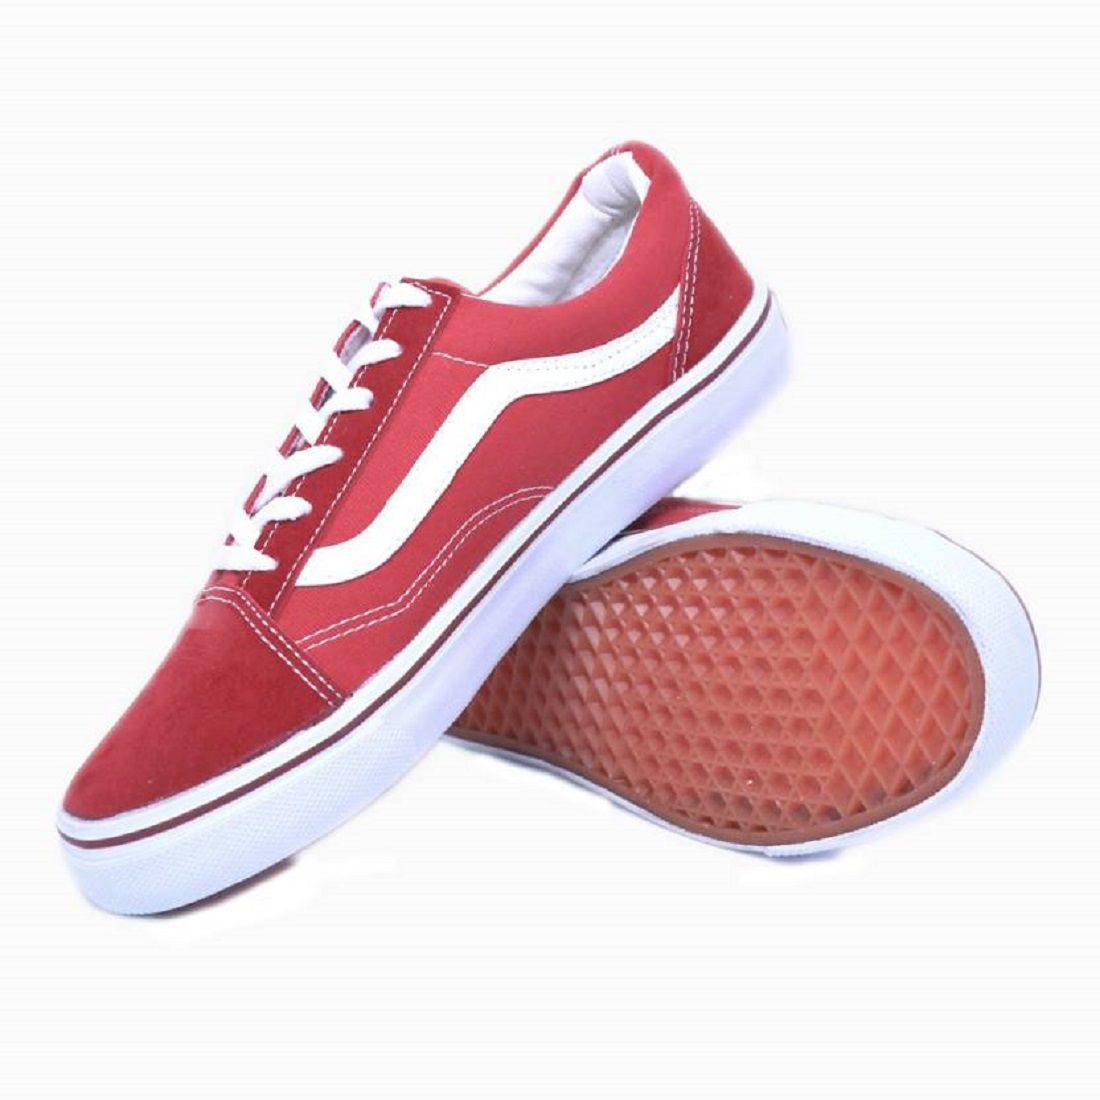 66e4db27f95 Vans Fashion old skool Sneakers Red Casual Shoes - Buy Vans Fashion old  skool Sneakers Red Casual Shoes Online at Best Prices in India on Snapdeal